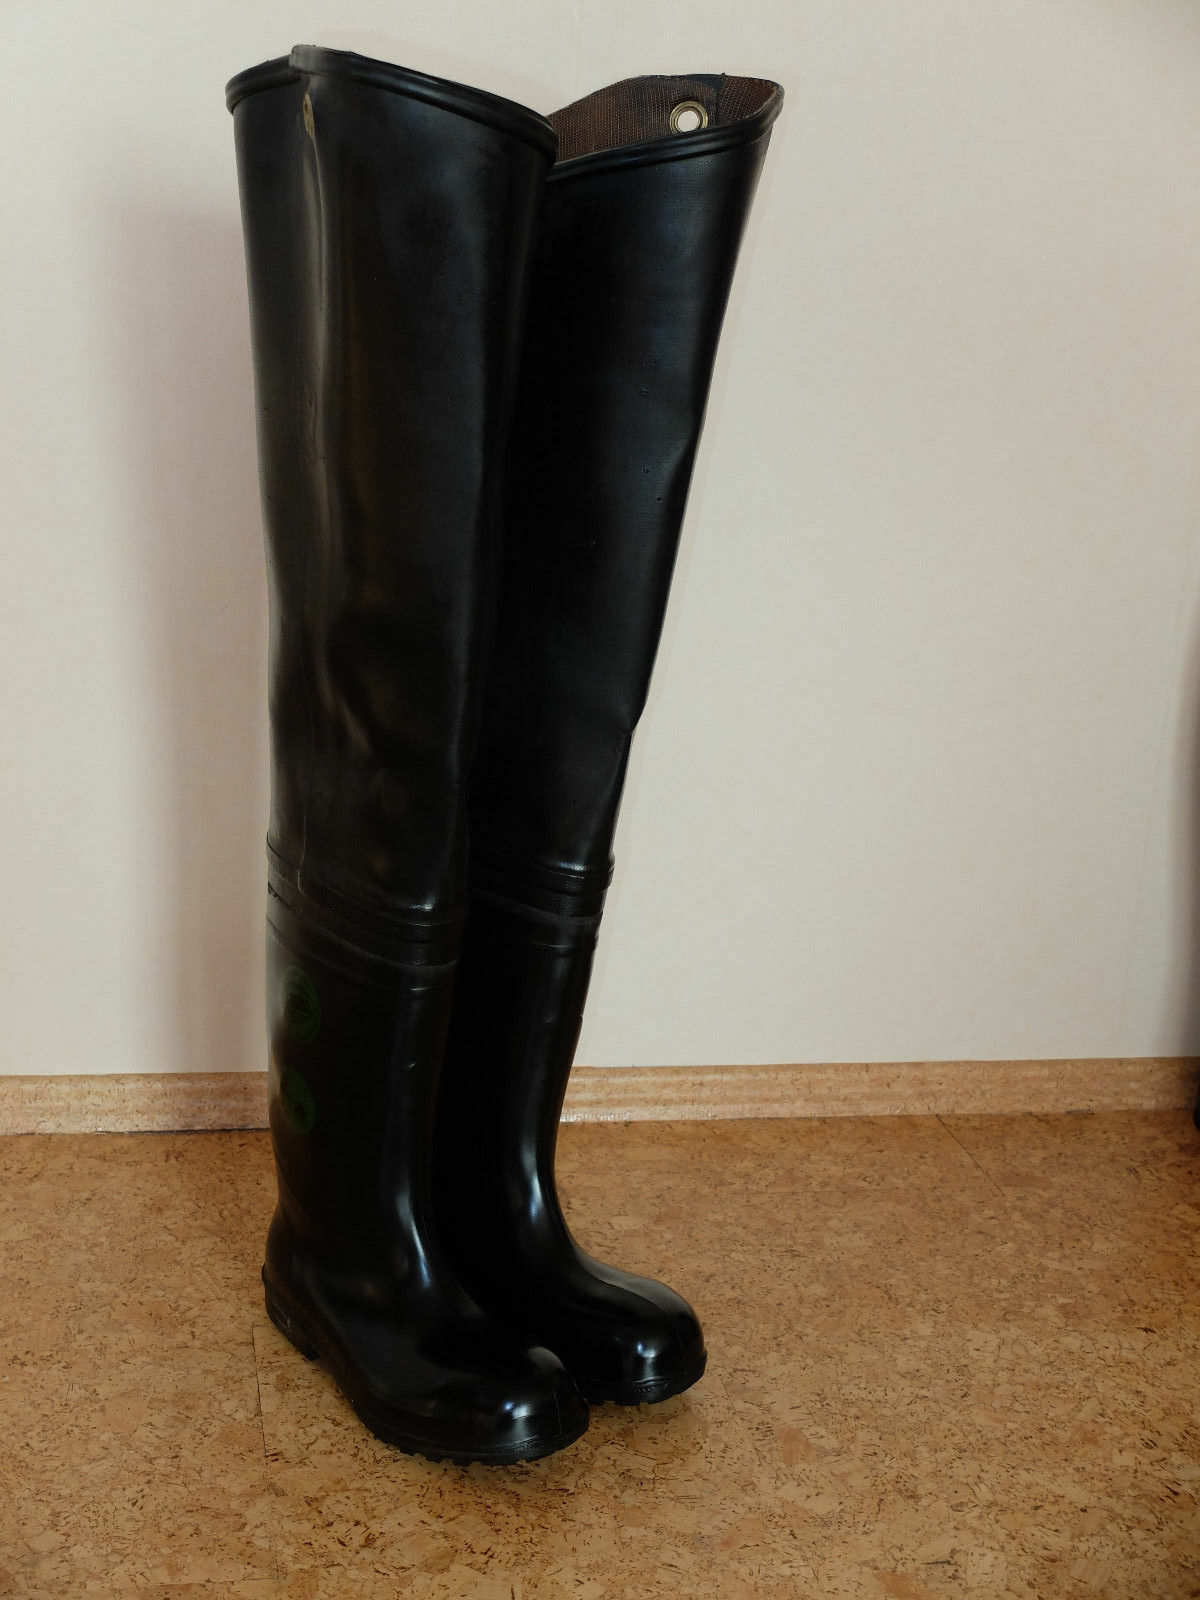 New Original Bekina Thigh Hip Extra Tall Waders Wellington Boots.  All SIZES  fishional store for sale